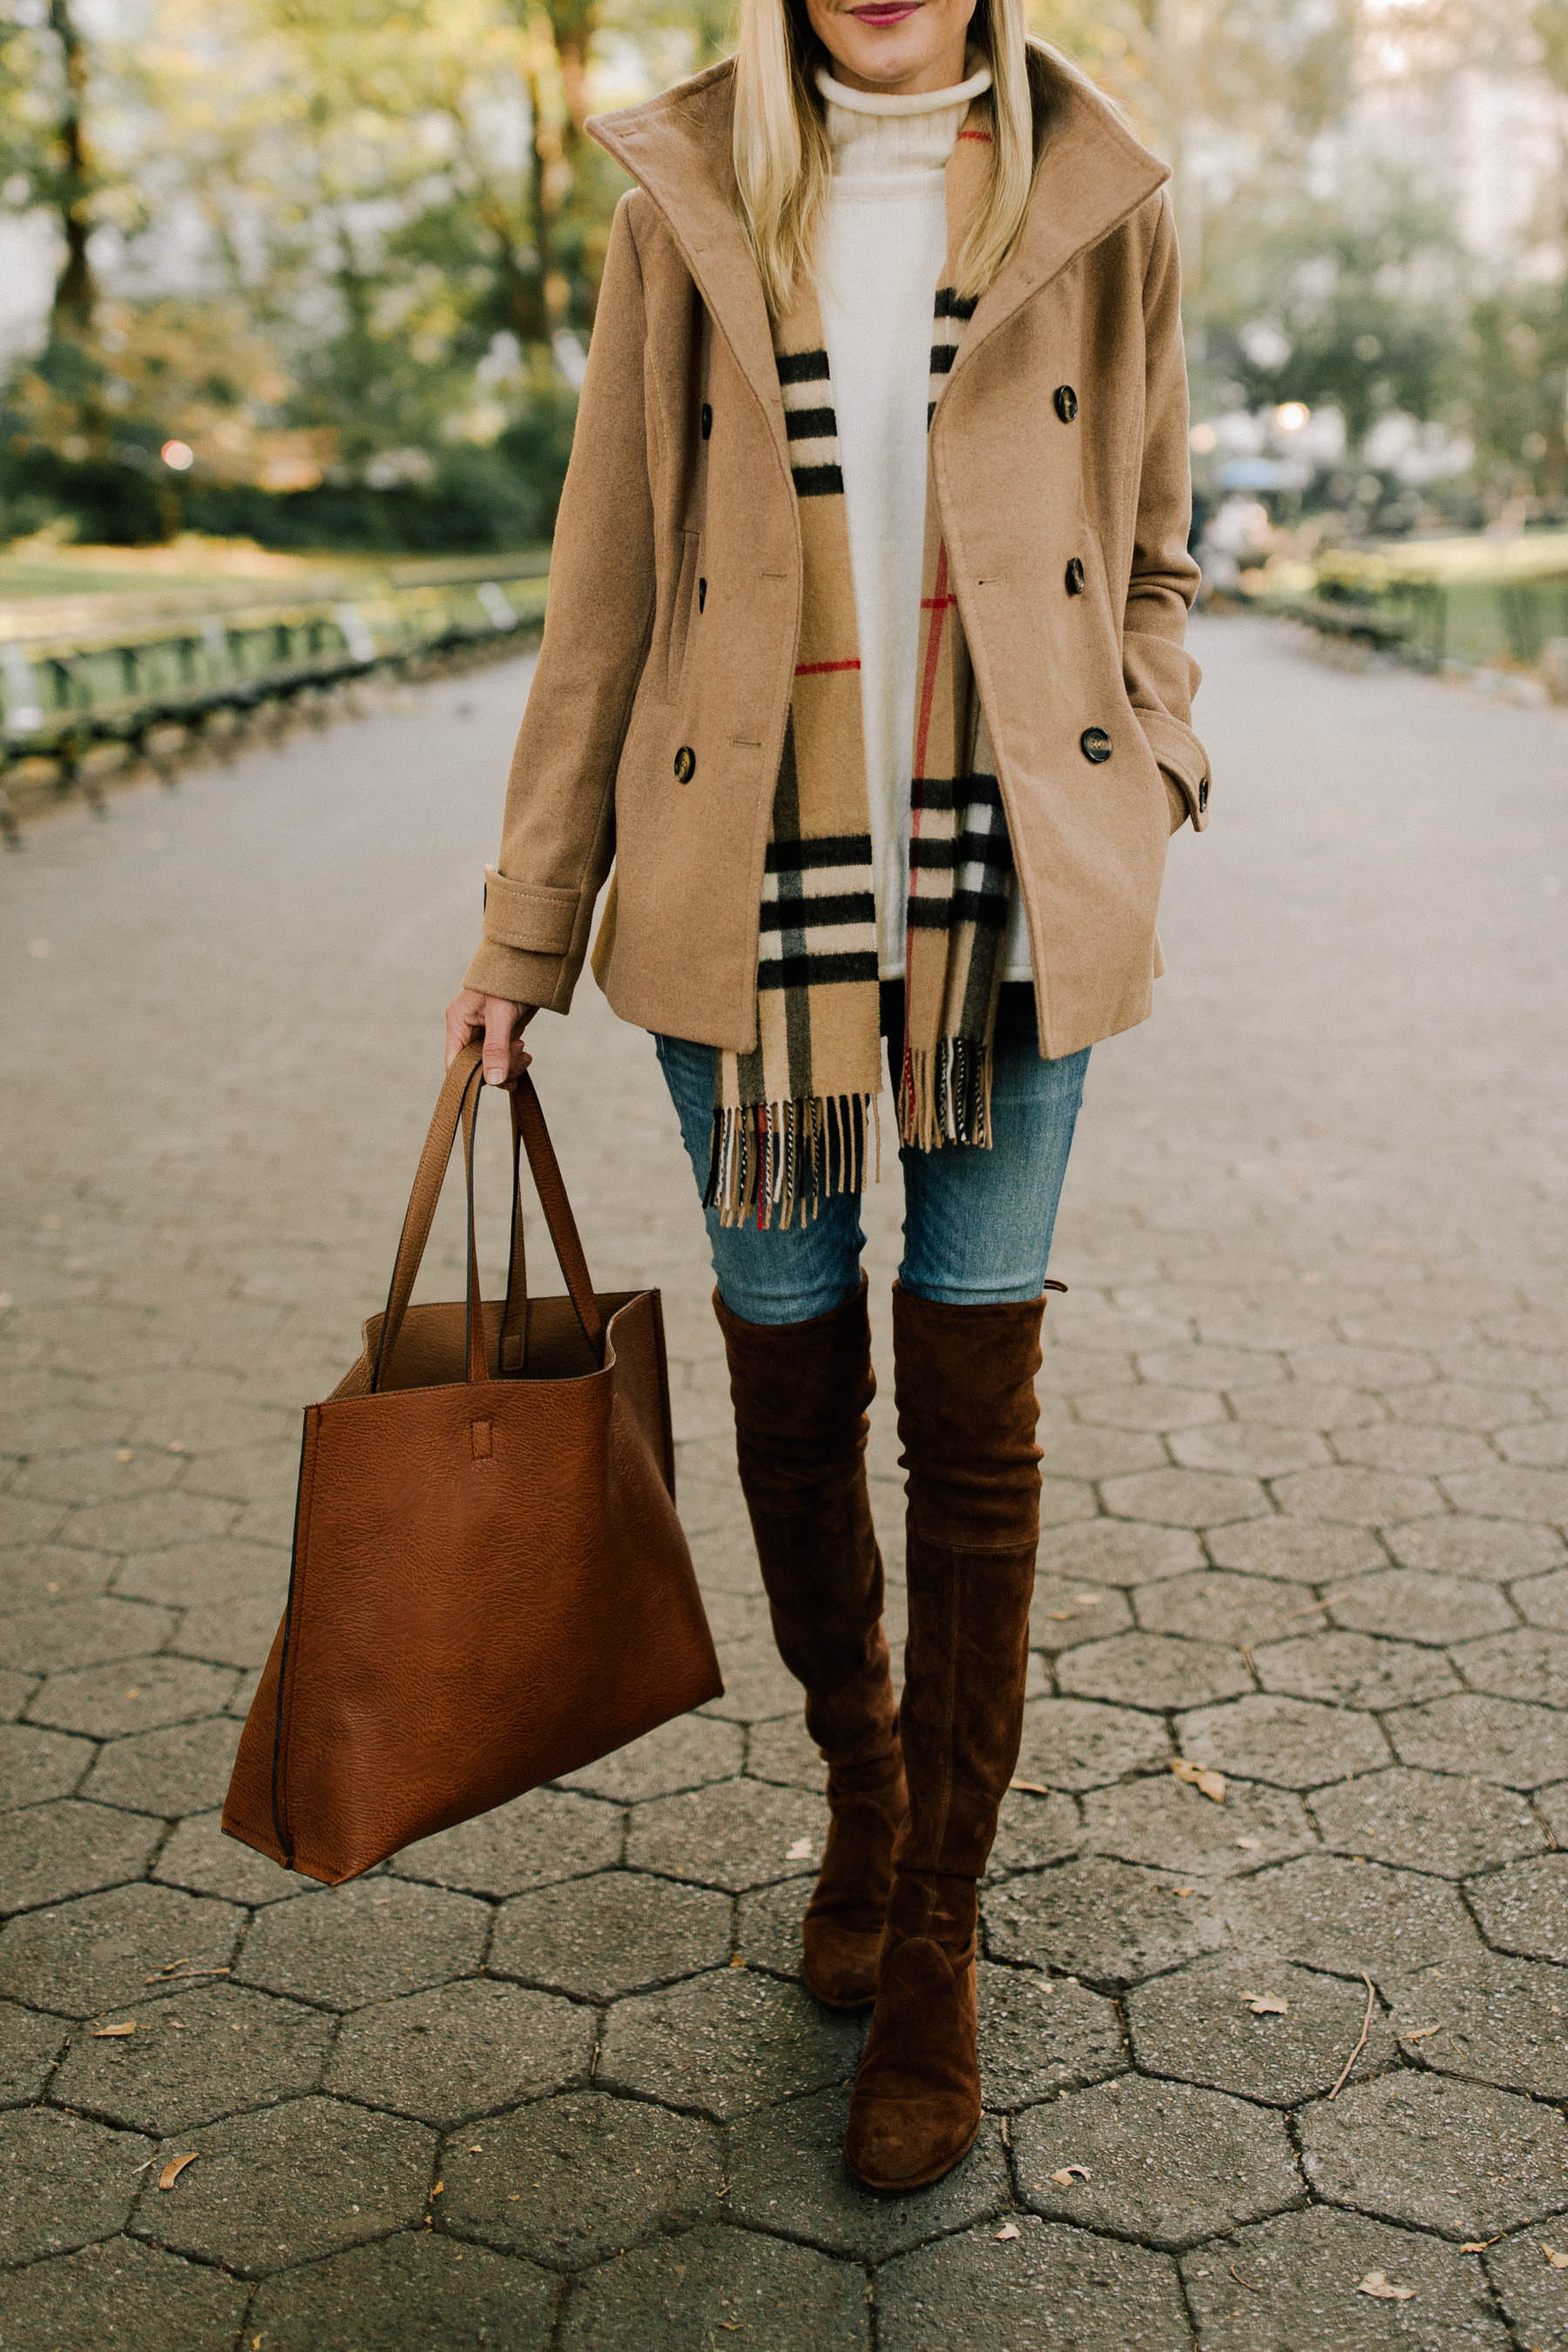 $38 Peacoat / Sweater / Burberry Scarf  / $49 Faux Leather Tote / Stuart Weitzman Boots / AG Jeans